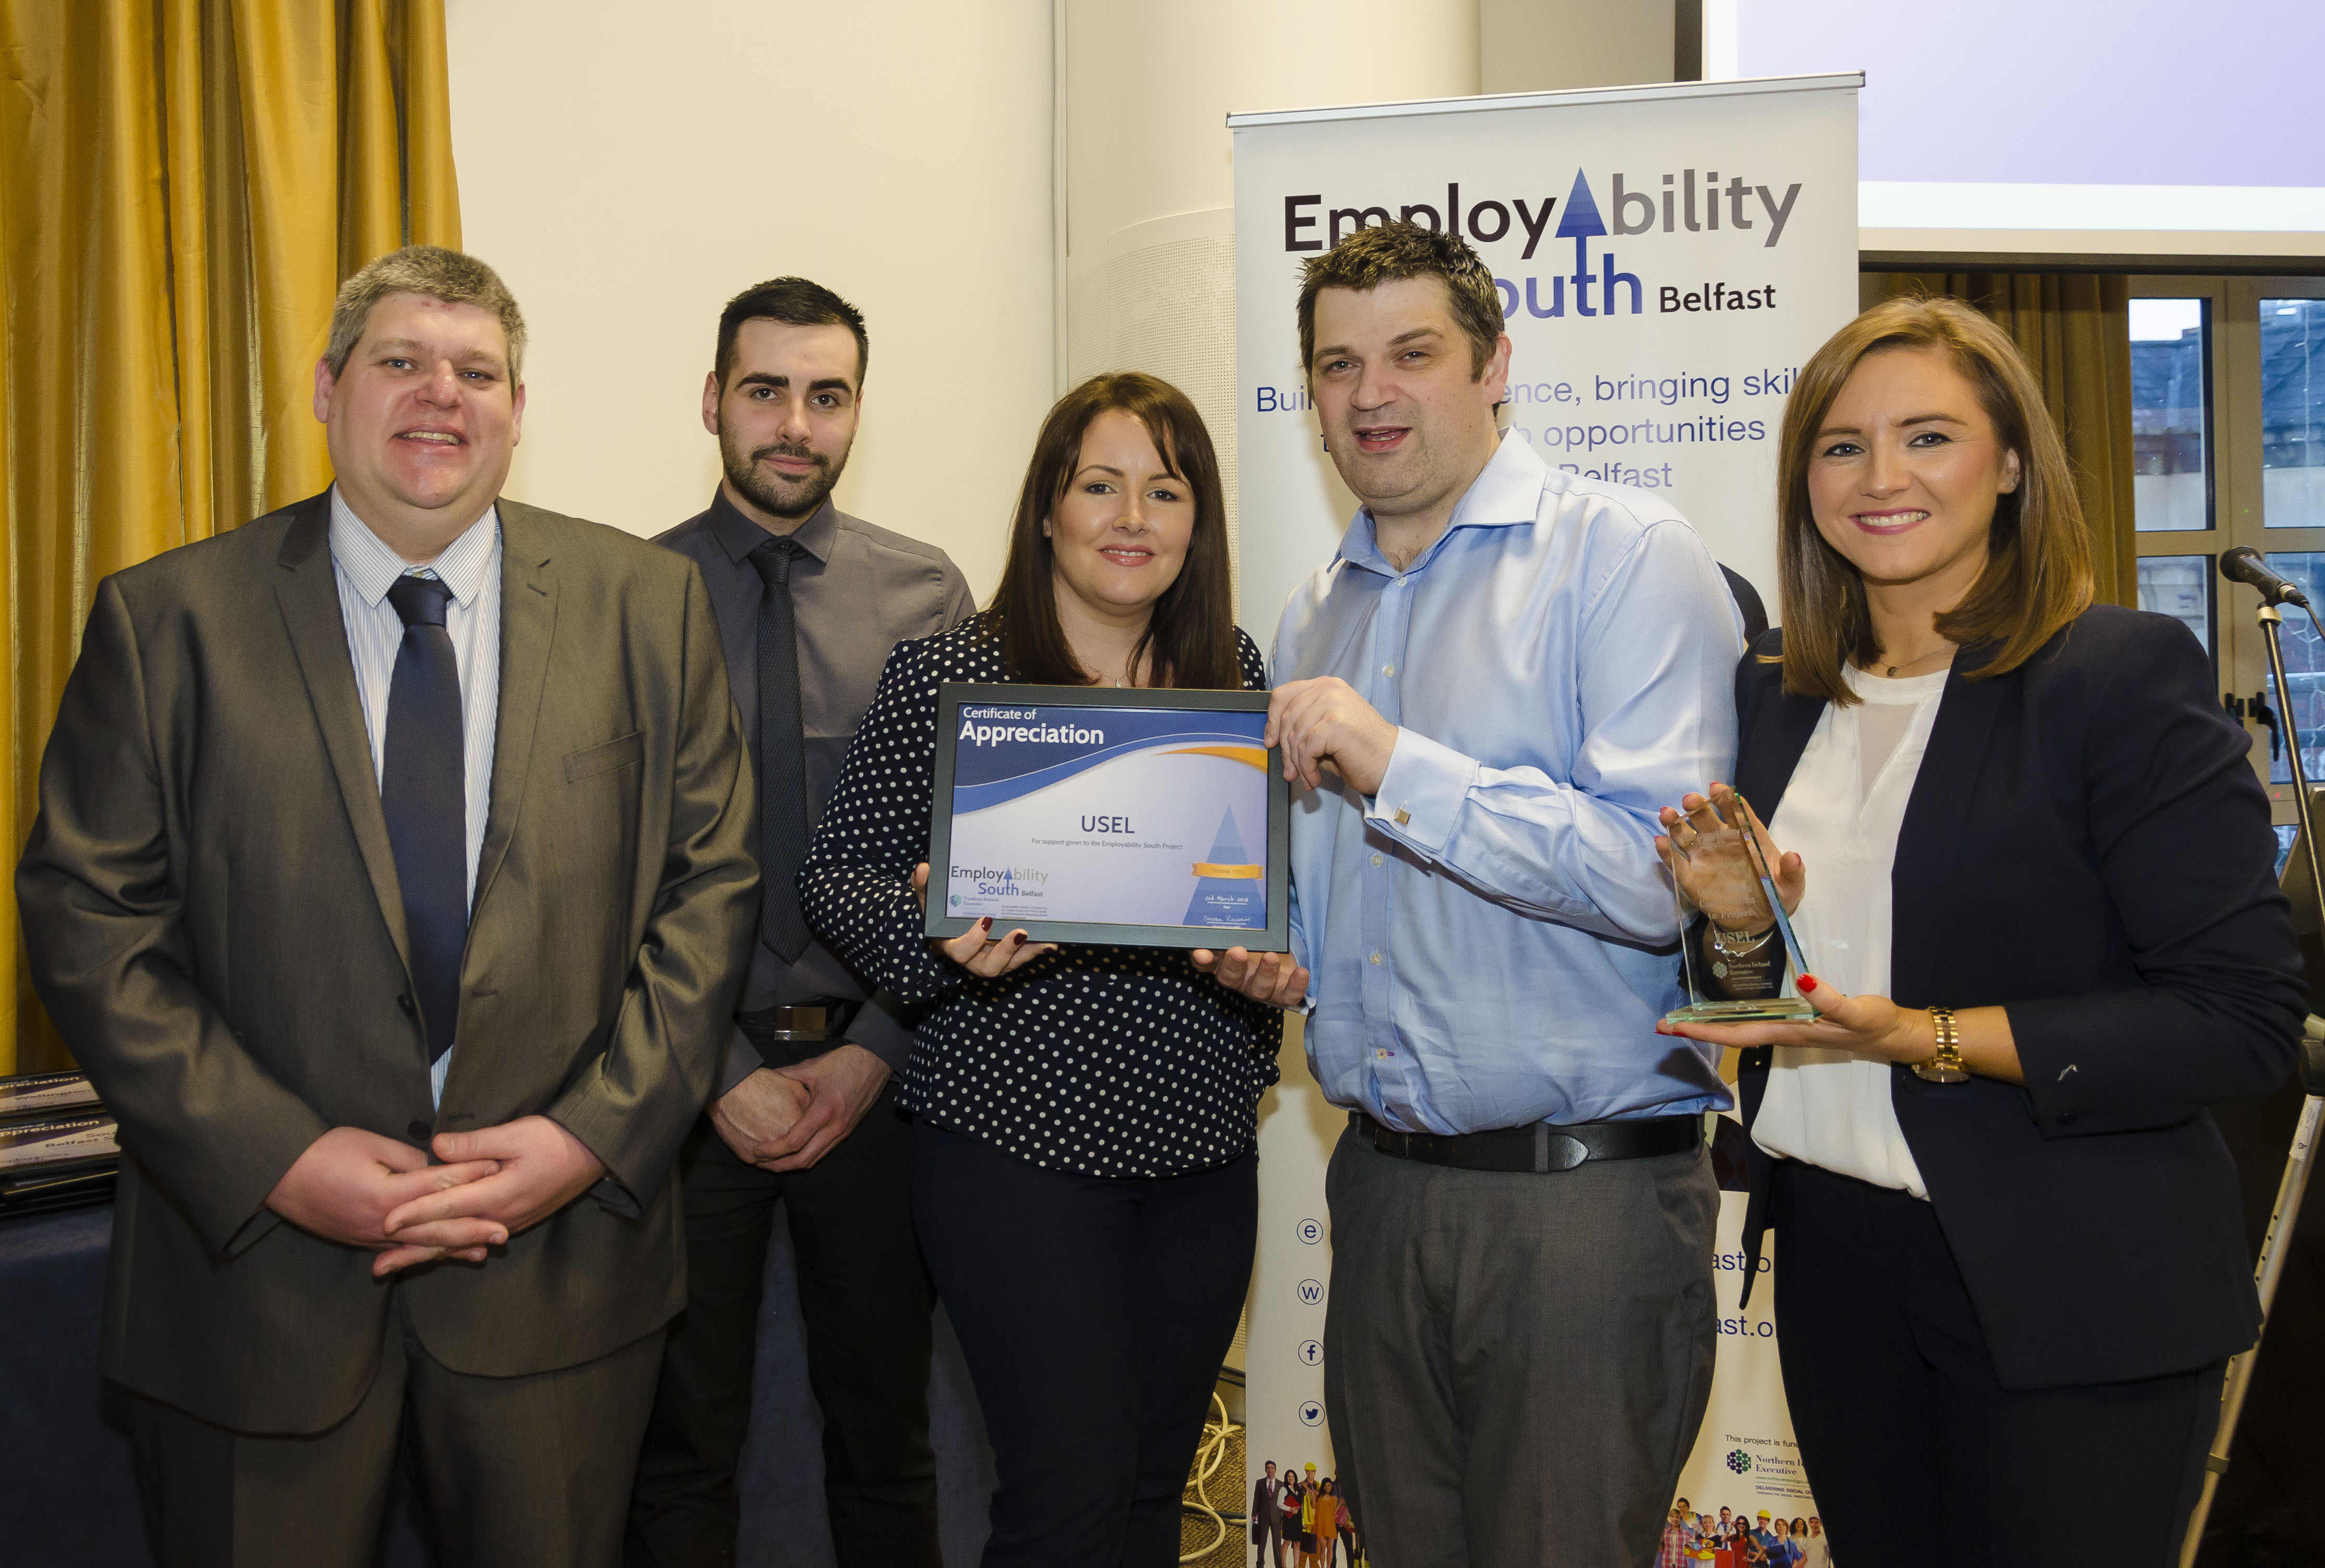 South Belfast employment project creates 120 jobs for long term unemployed